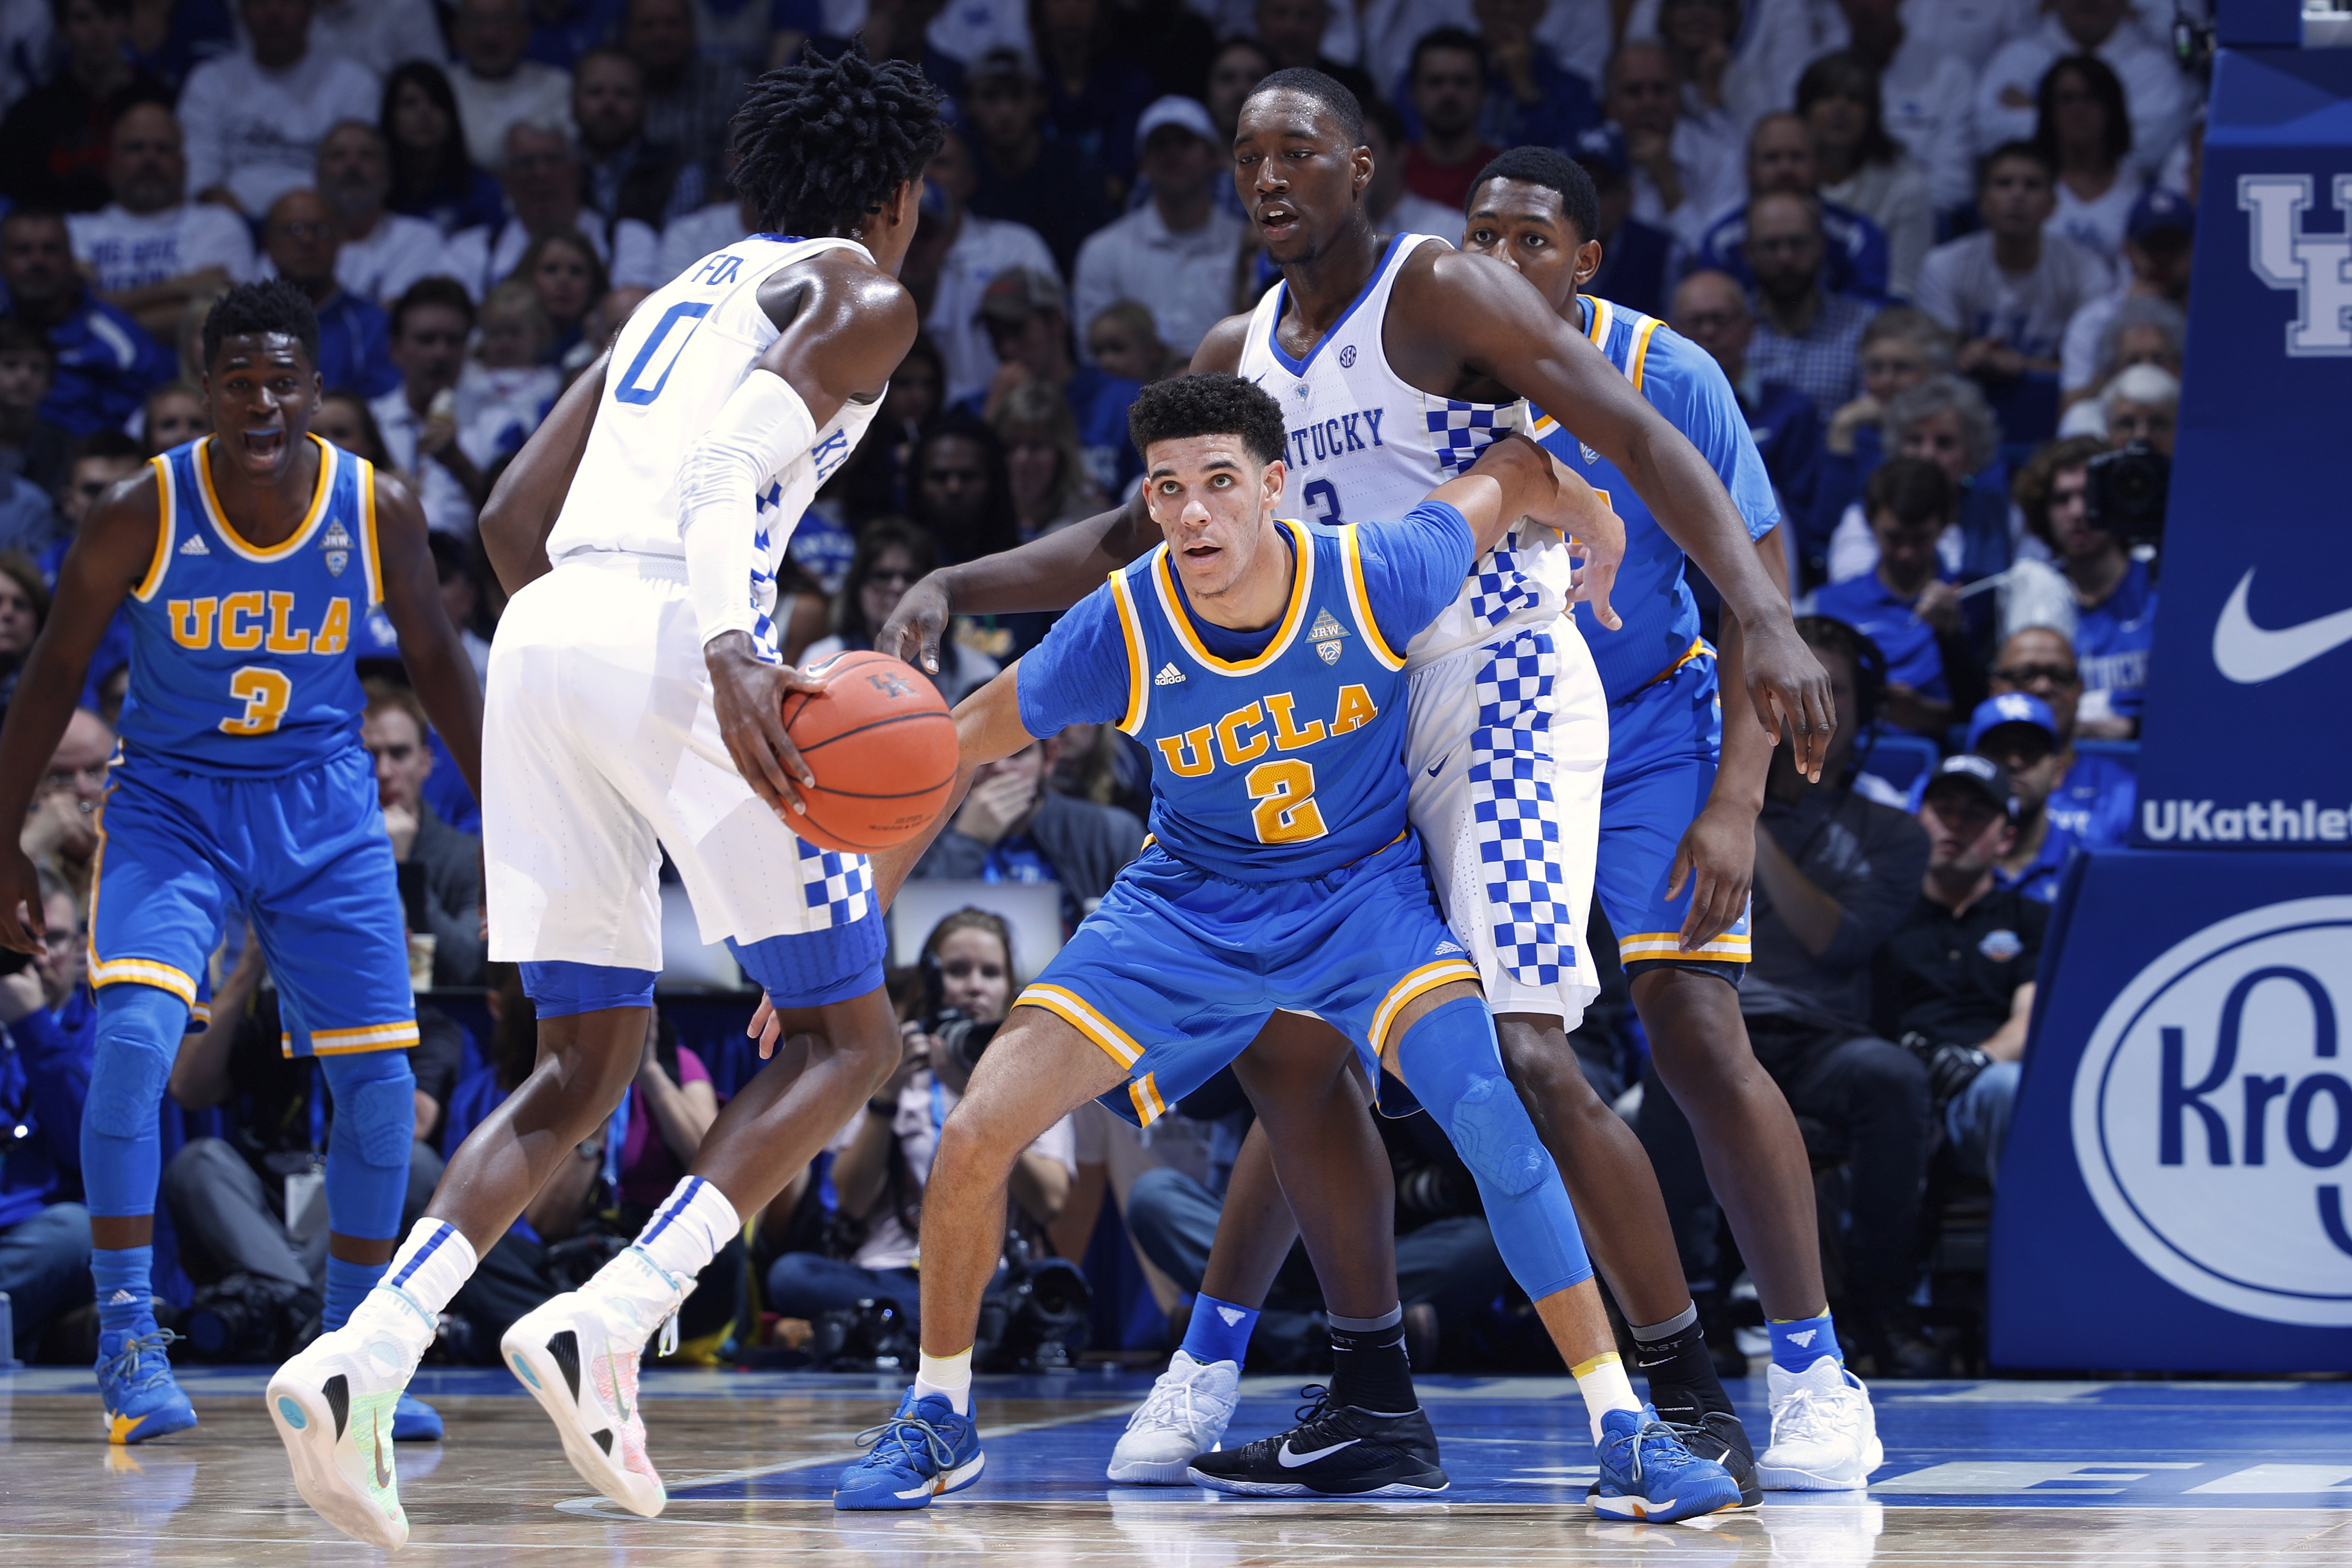 March Madness Ucla Vs Kentucky Predictions May Be Wrong On Lonzo Ball Fortune